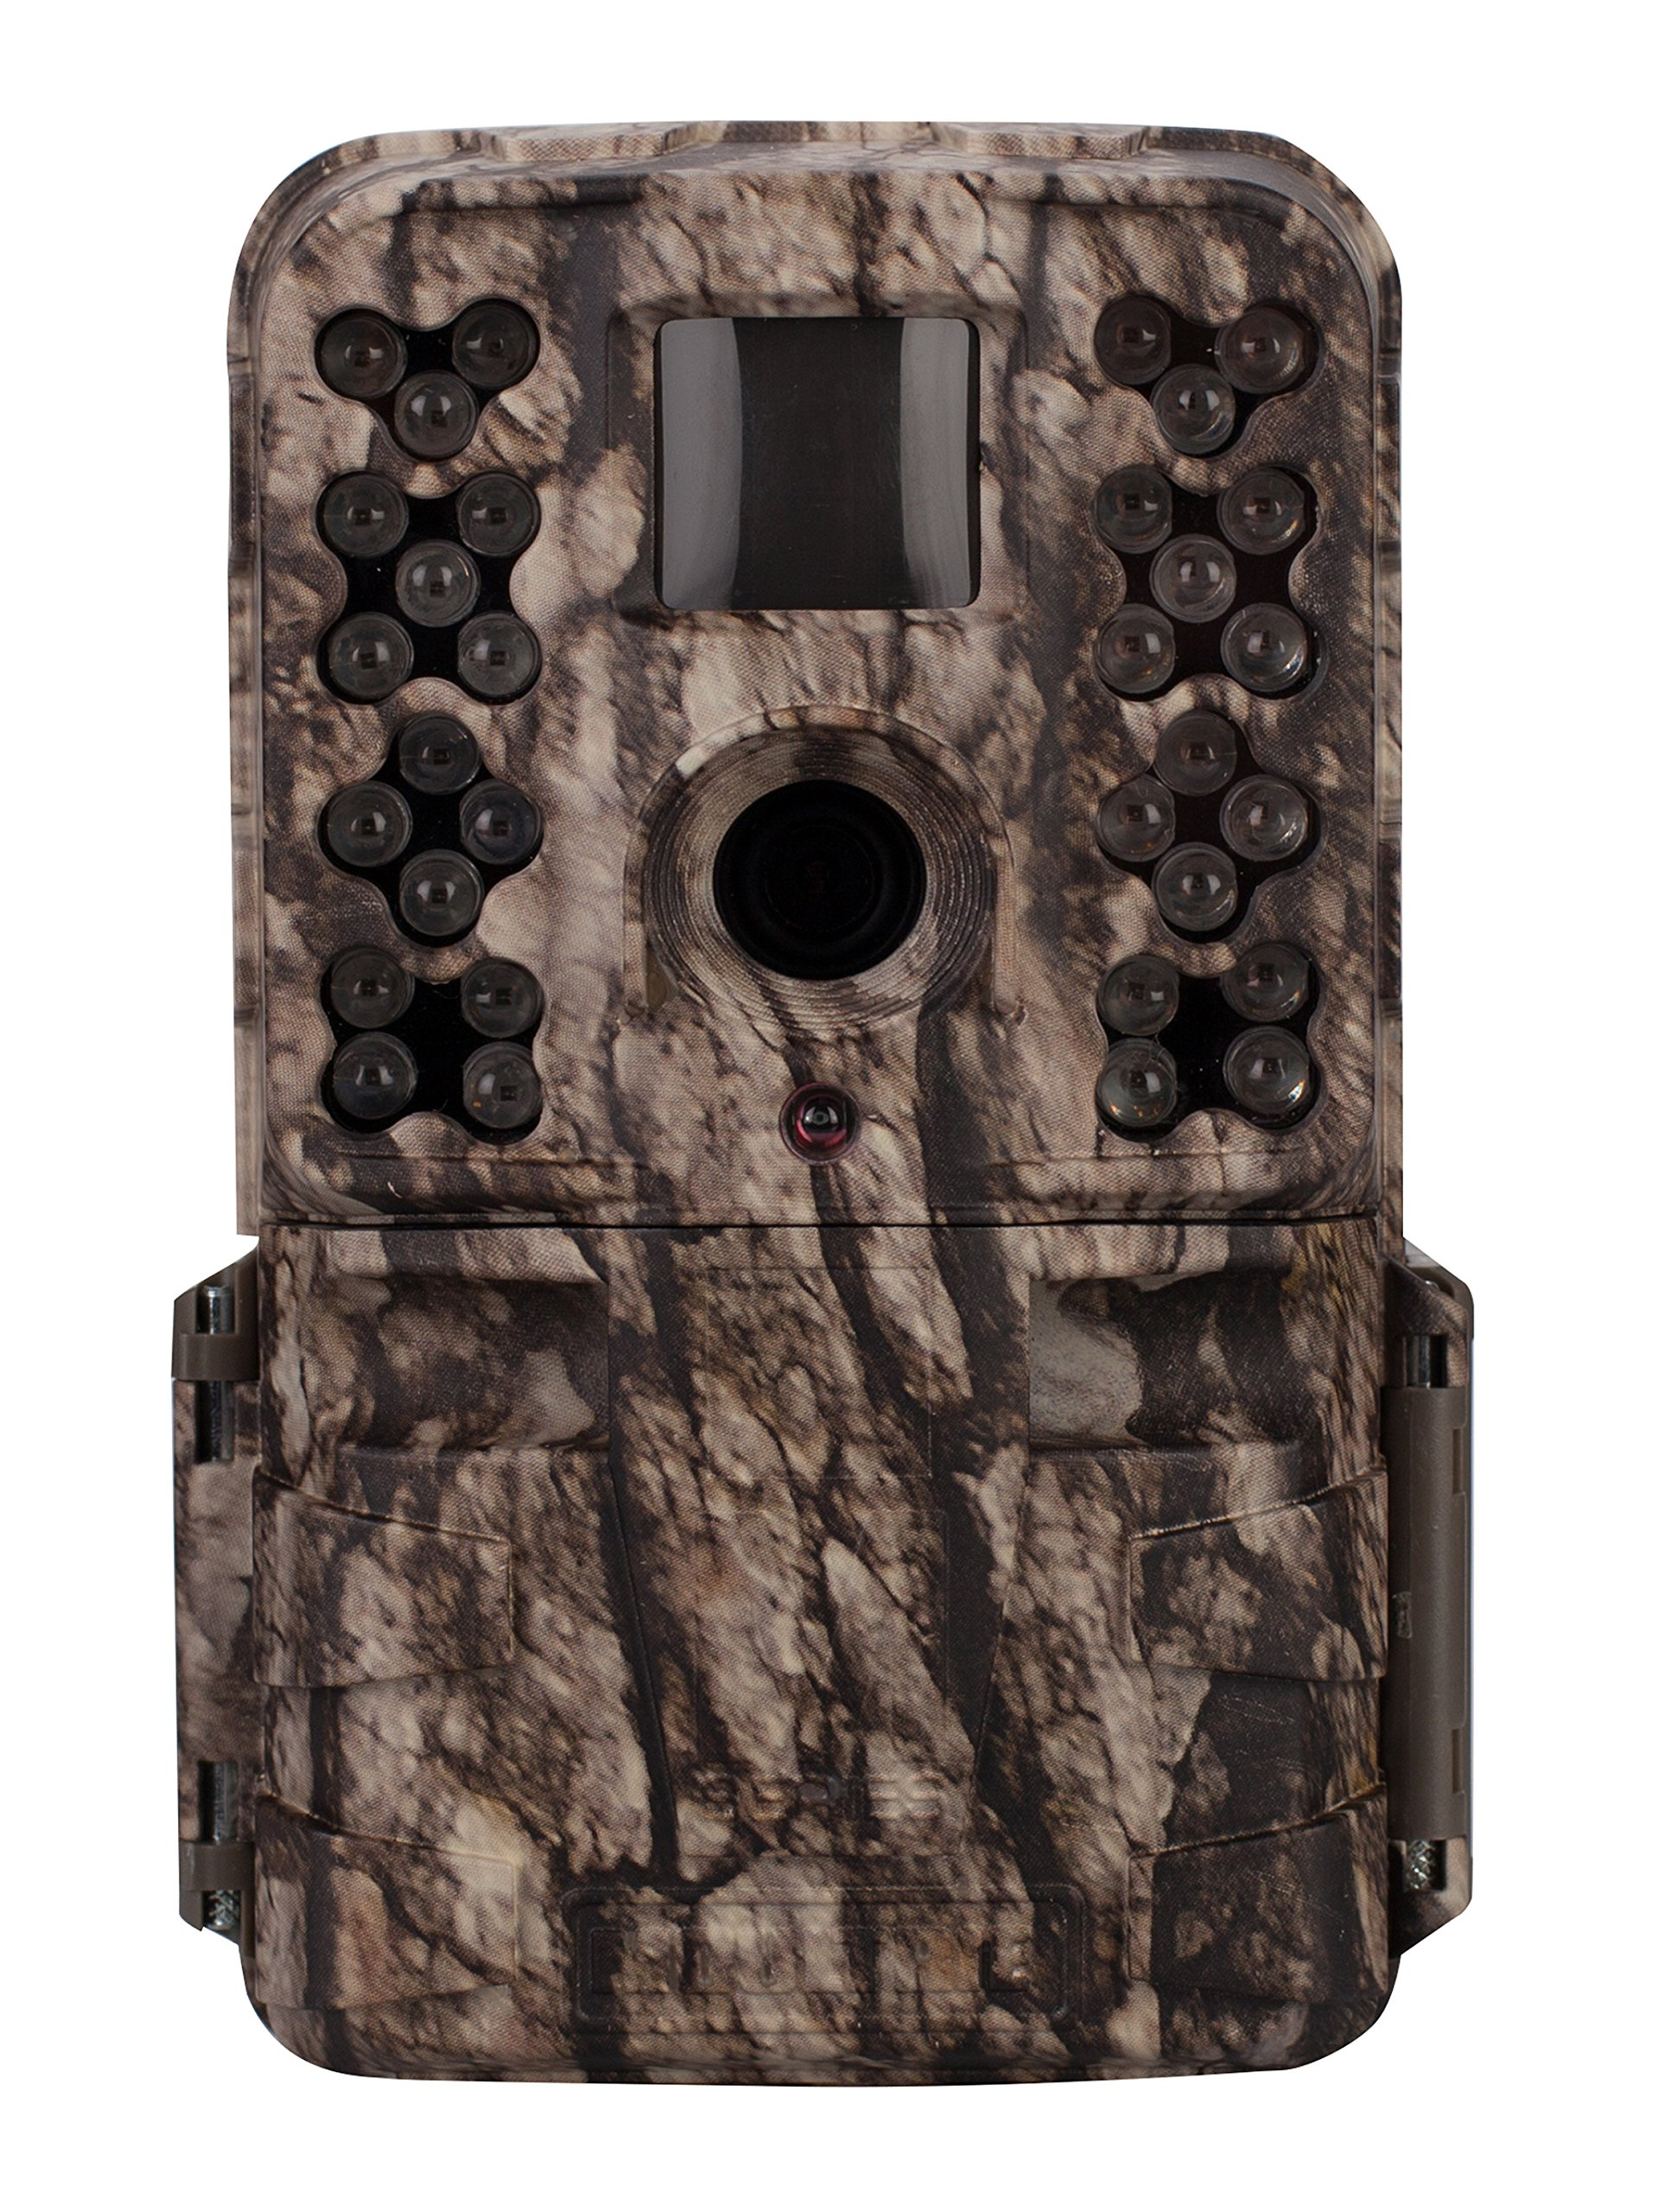 Moultrie Game Camera (2018) | M-Series |20 MP | 0.3 S Trigger Speed | 1080p Video w Audio | Compatible with Moultrie…